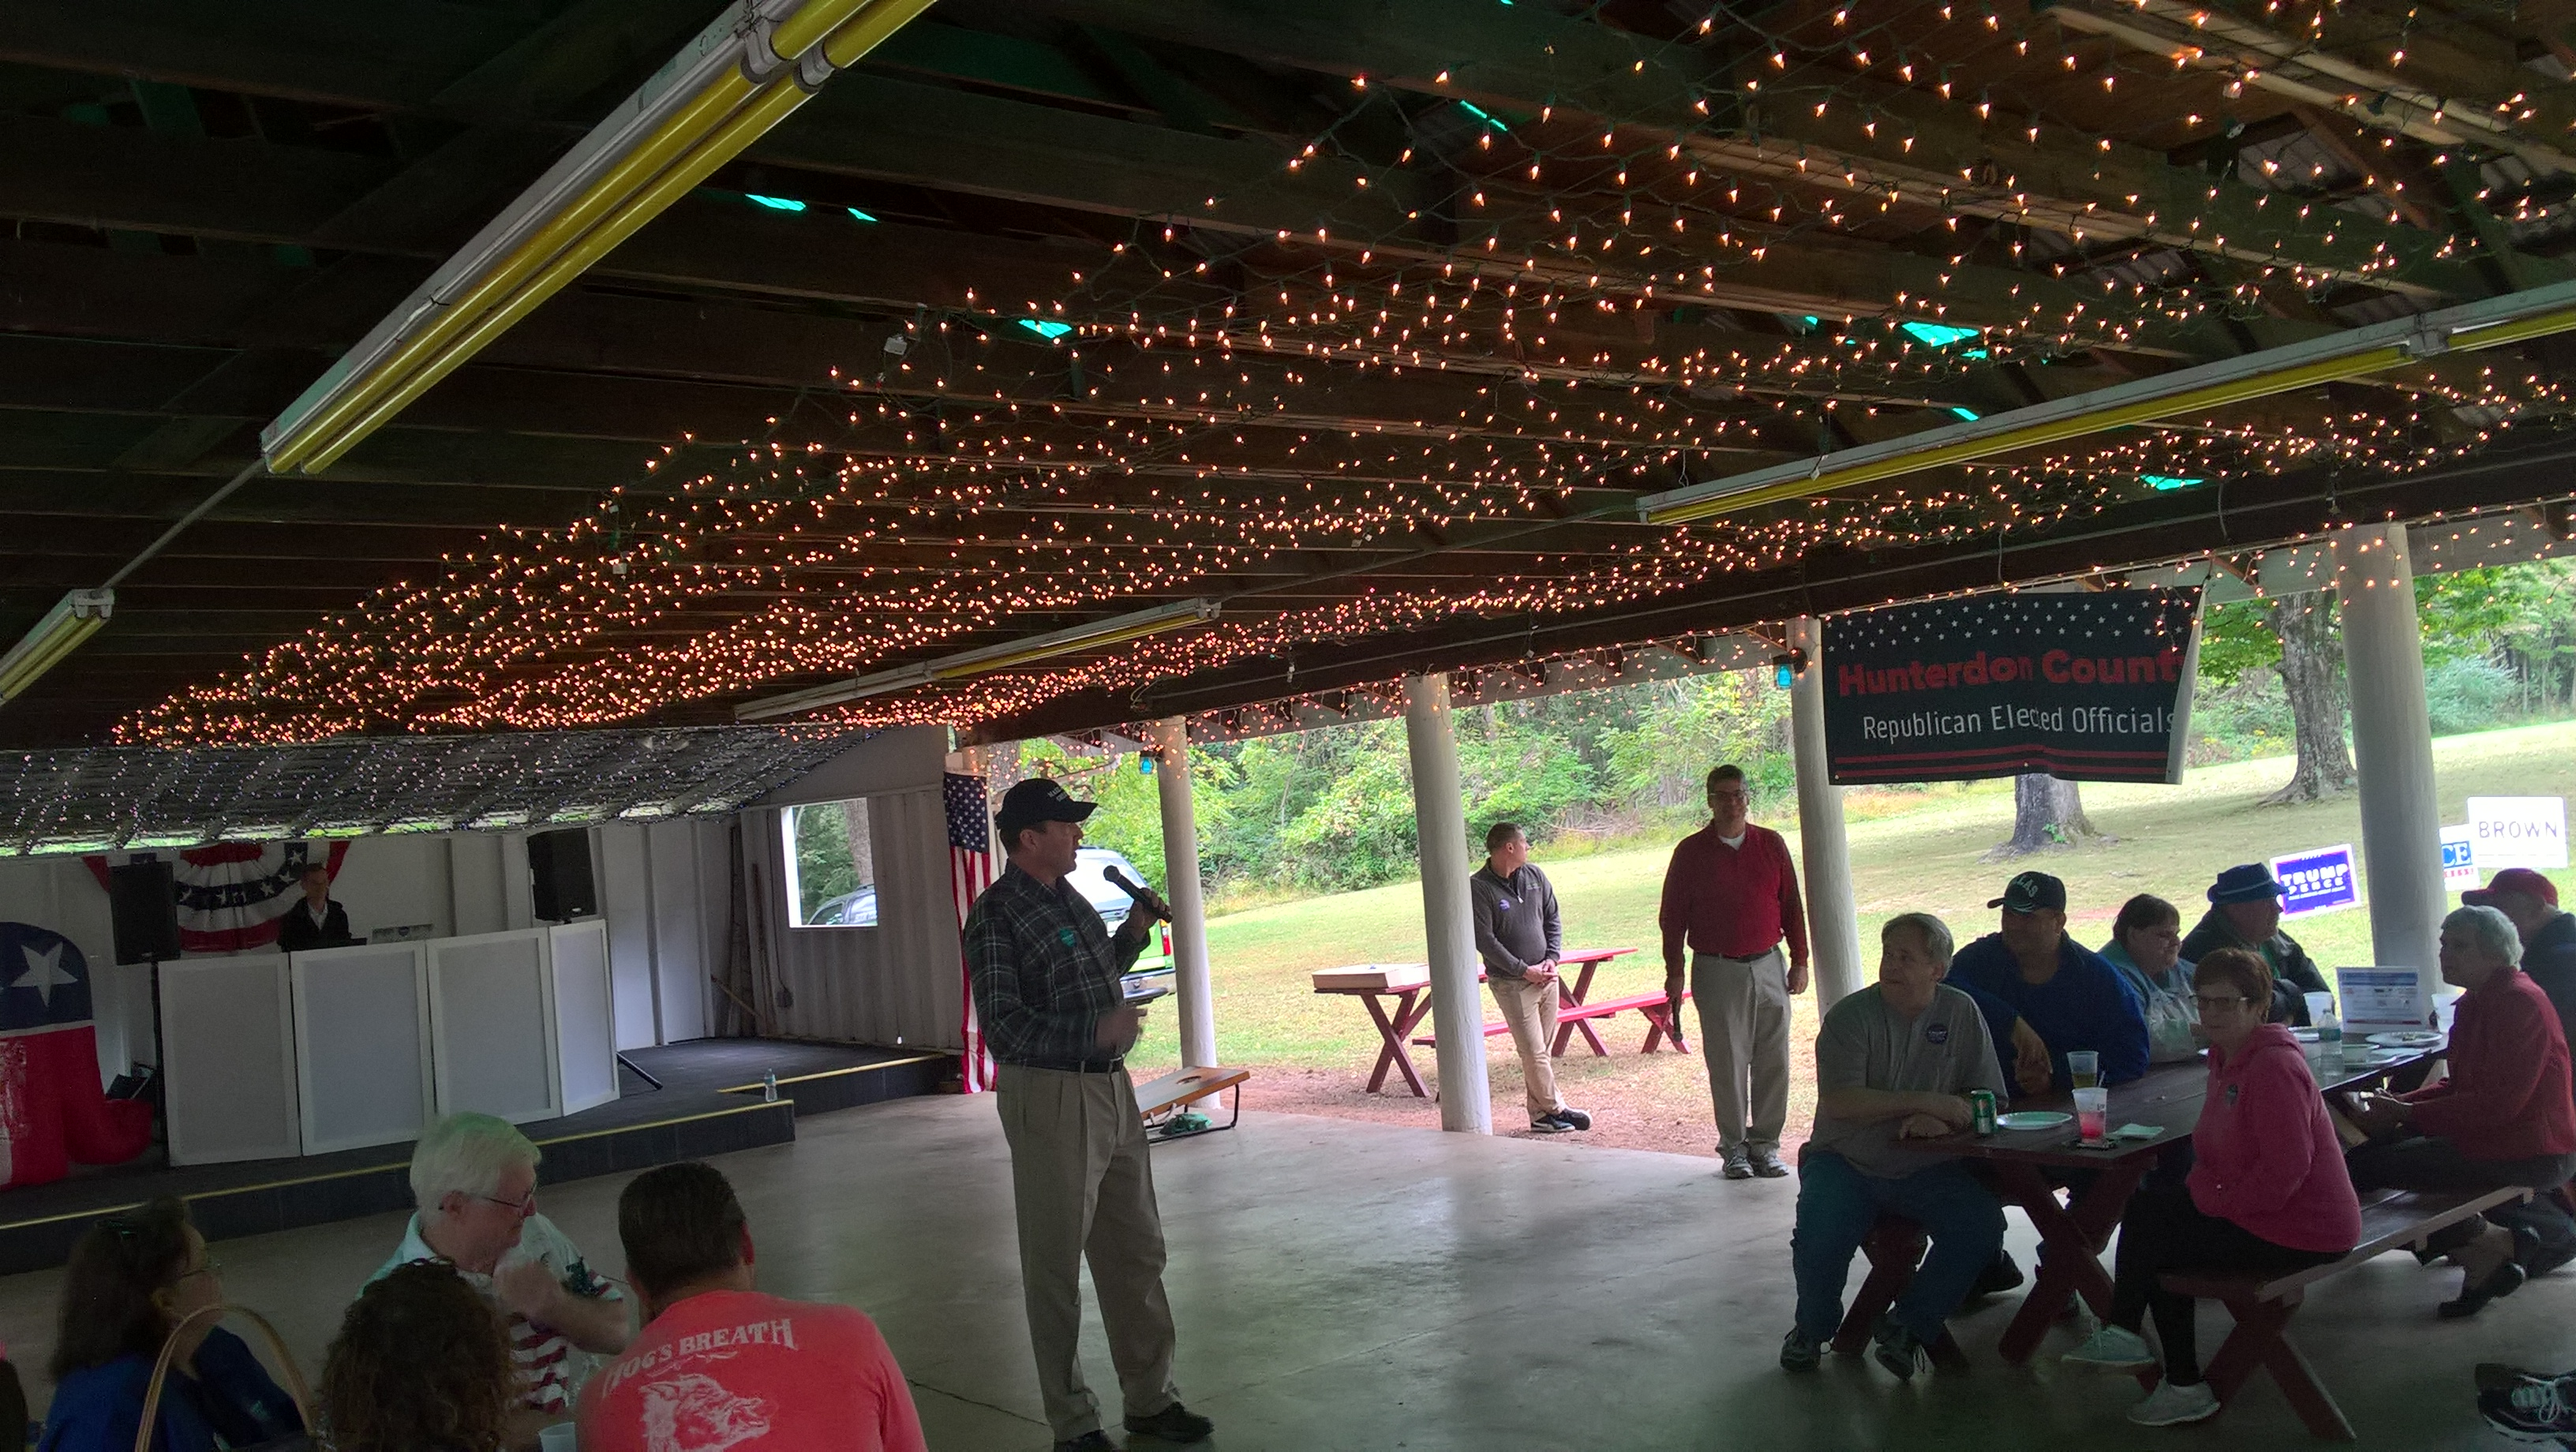 Senator Mike Doherty 23rd District Nj Told The Aunce At A Hunterdon County Republican Committee Hcrc Annual Family Picnic 10 02 16